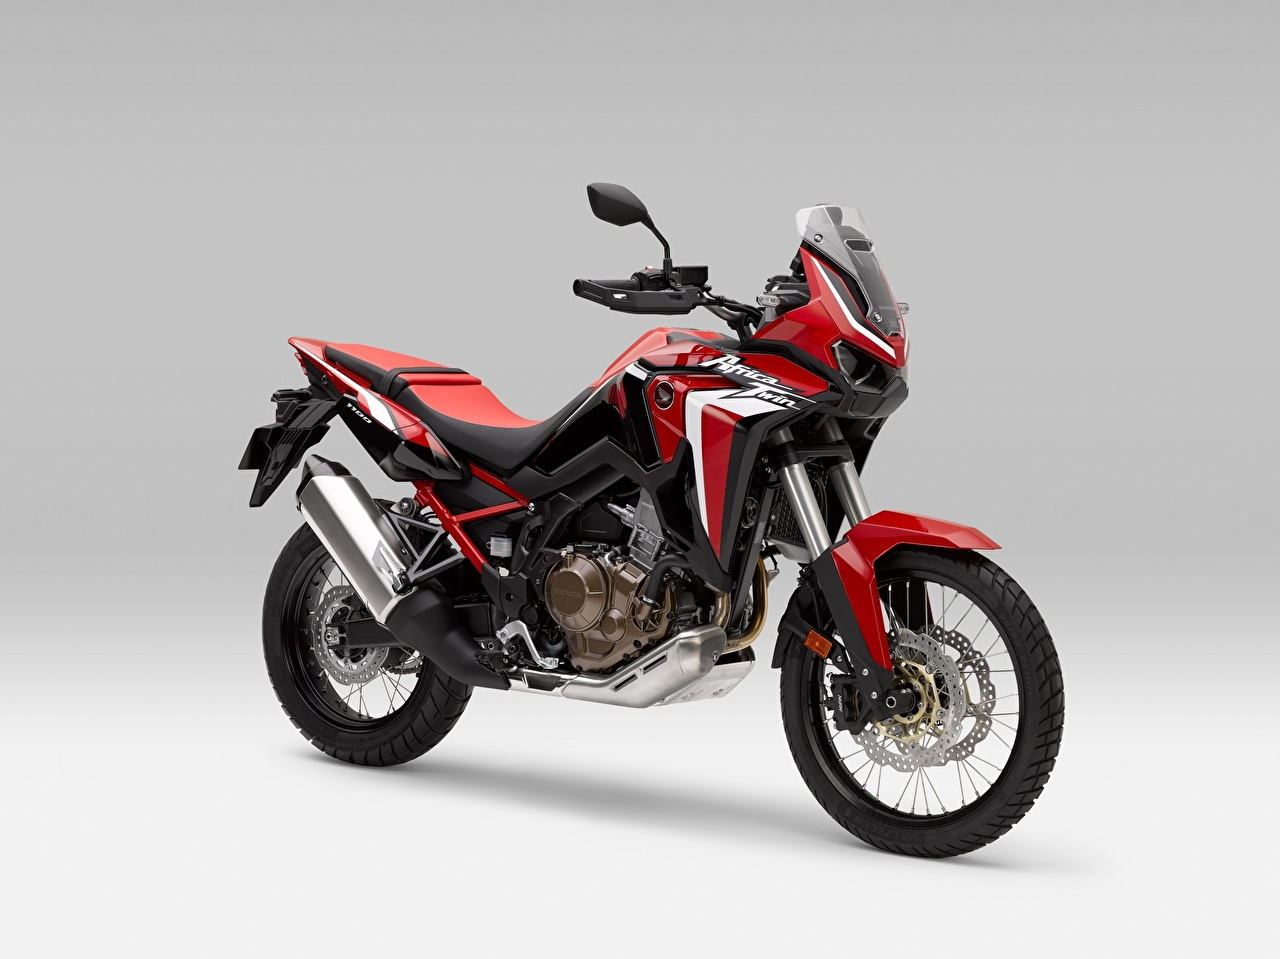 Picture Honda - Motorcycles CRF 1000 D AFRICA TWIN, 2020 Red motorcycle Gray background Motorcycles